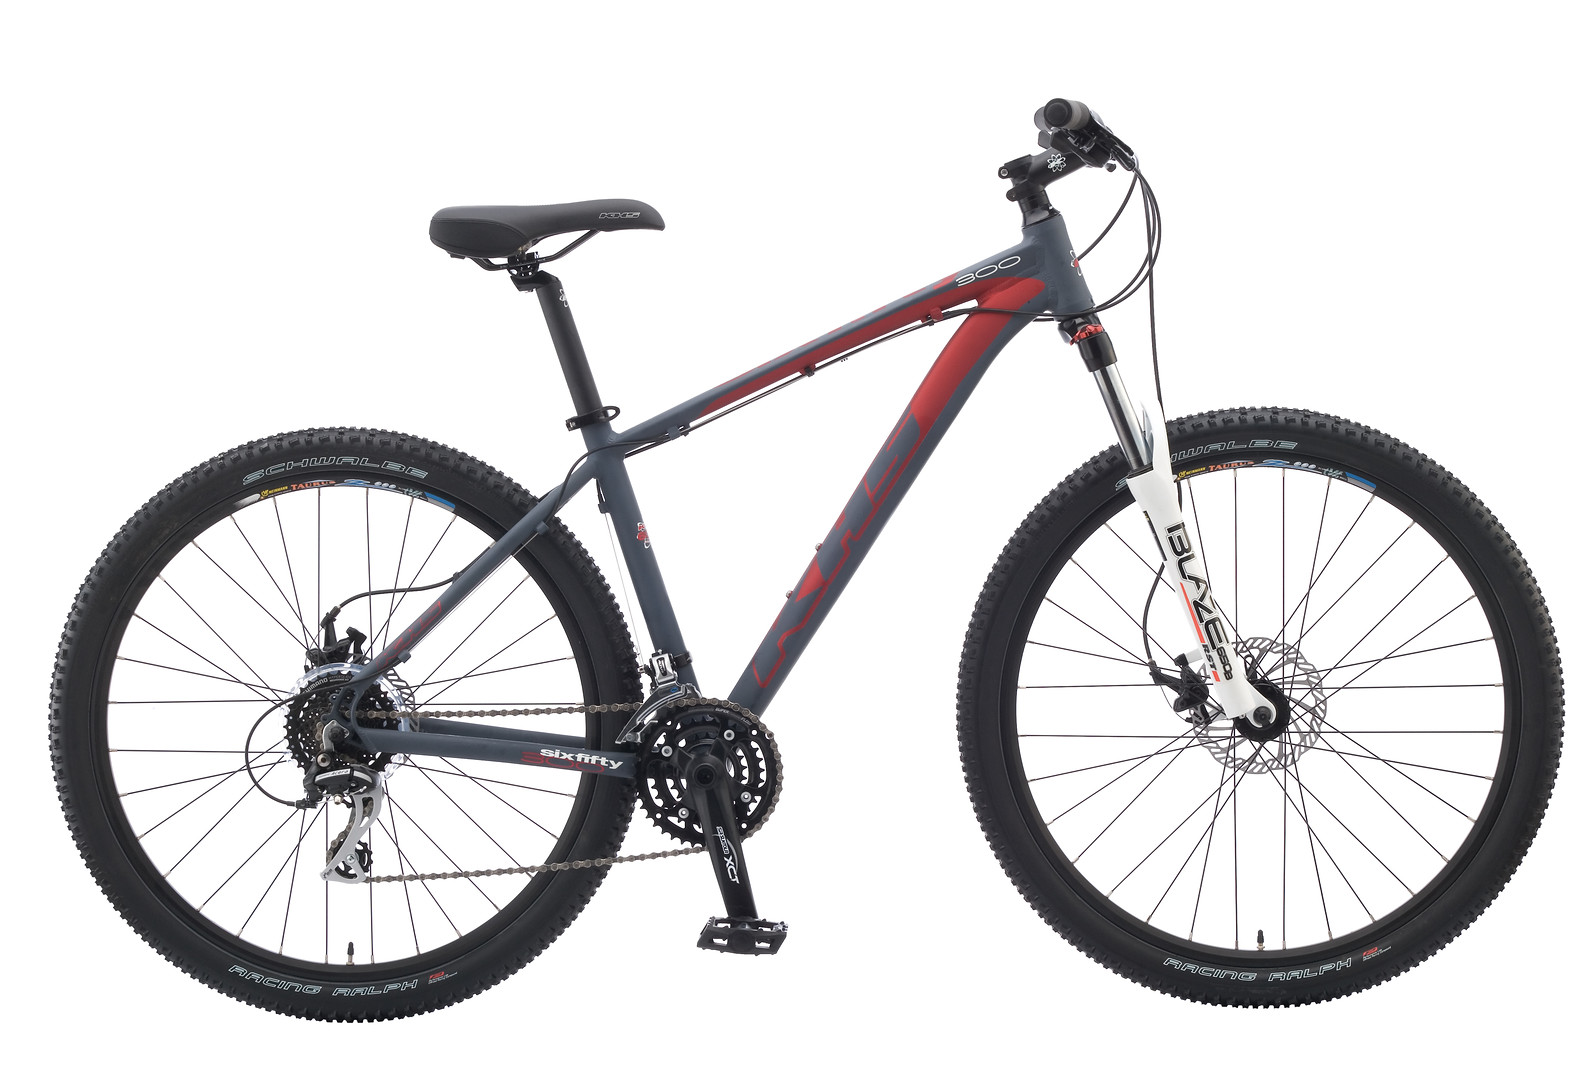 2013 KHS SixFifty 300 Bike 2013 SixFifty 300